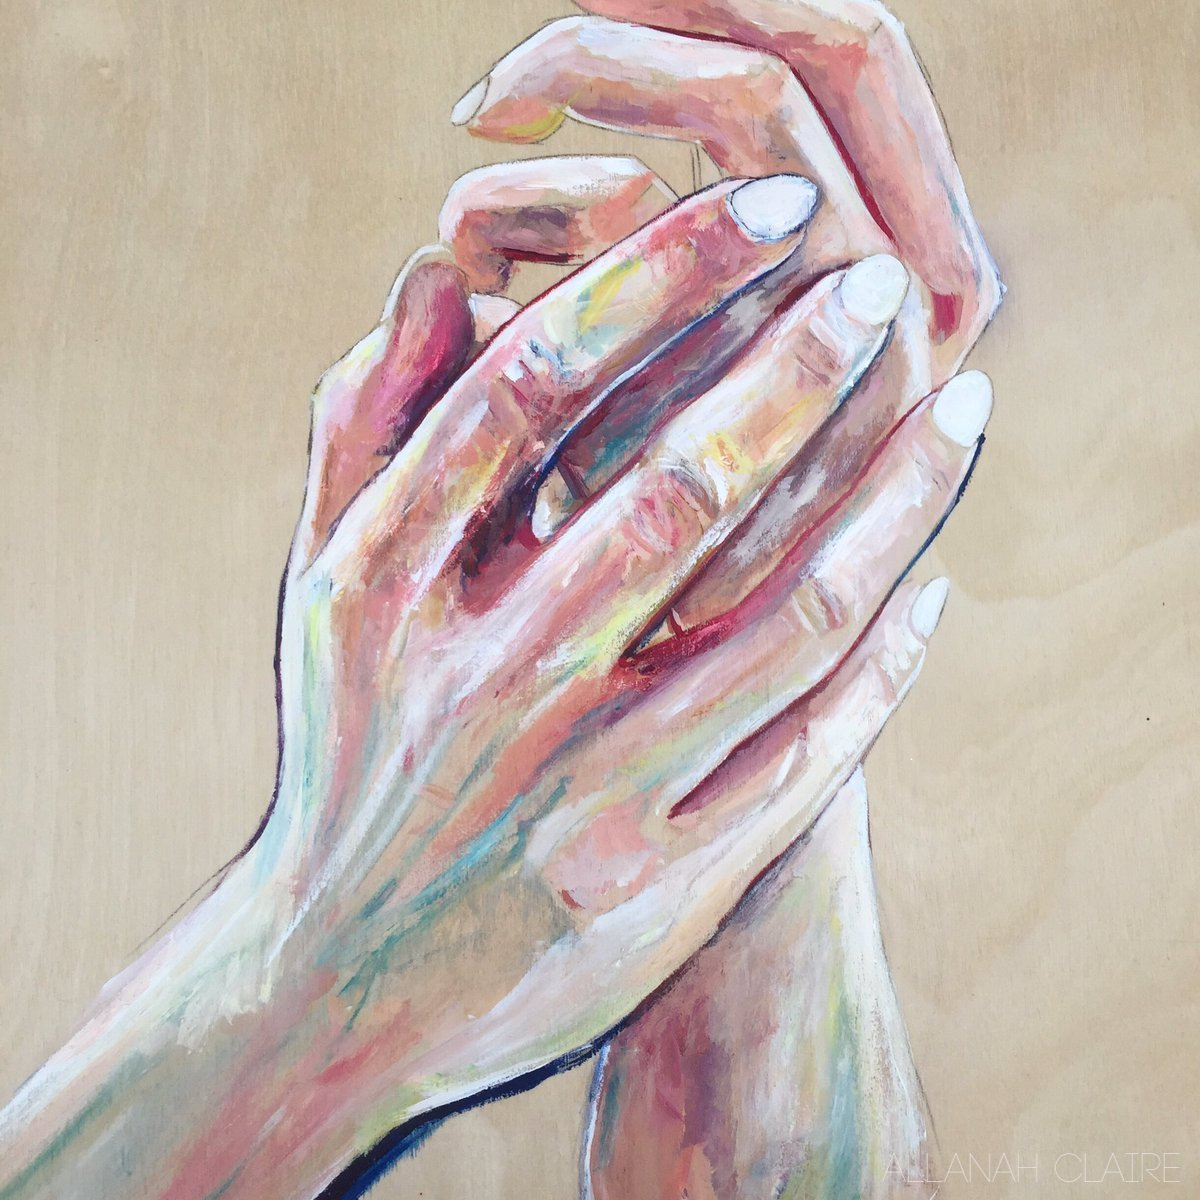 Hands, Acrylic on Wood, 2019.